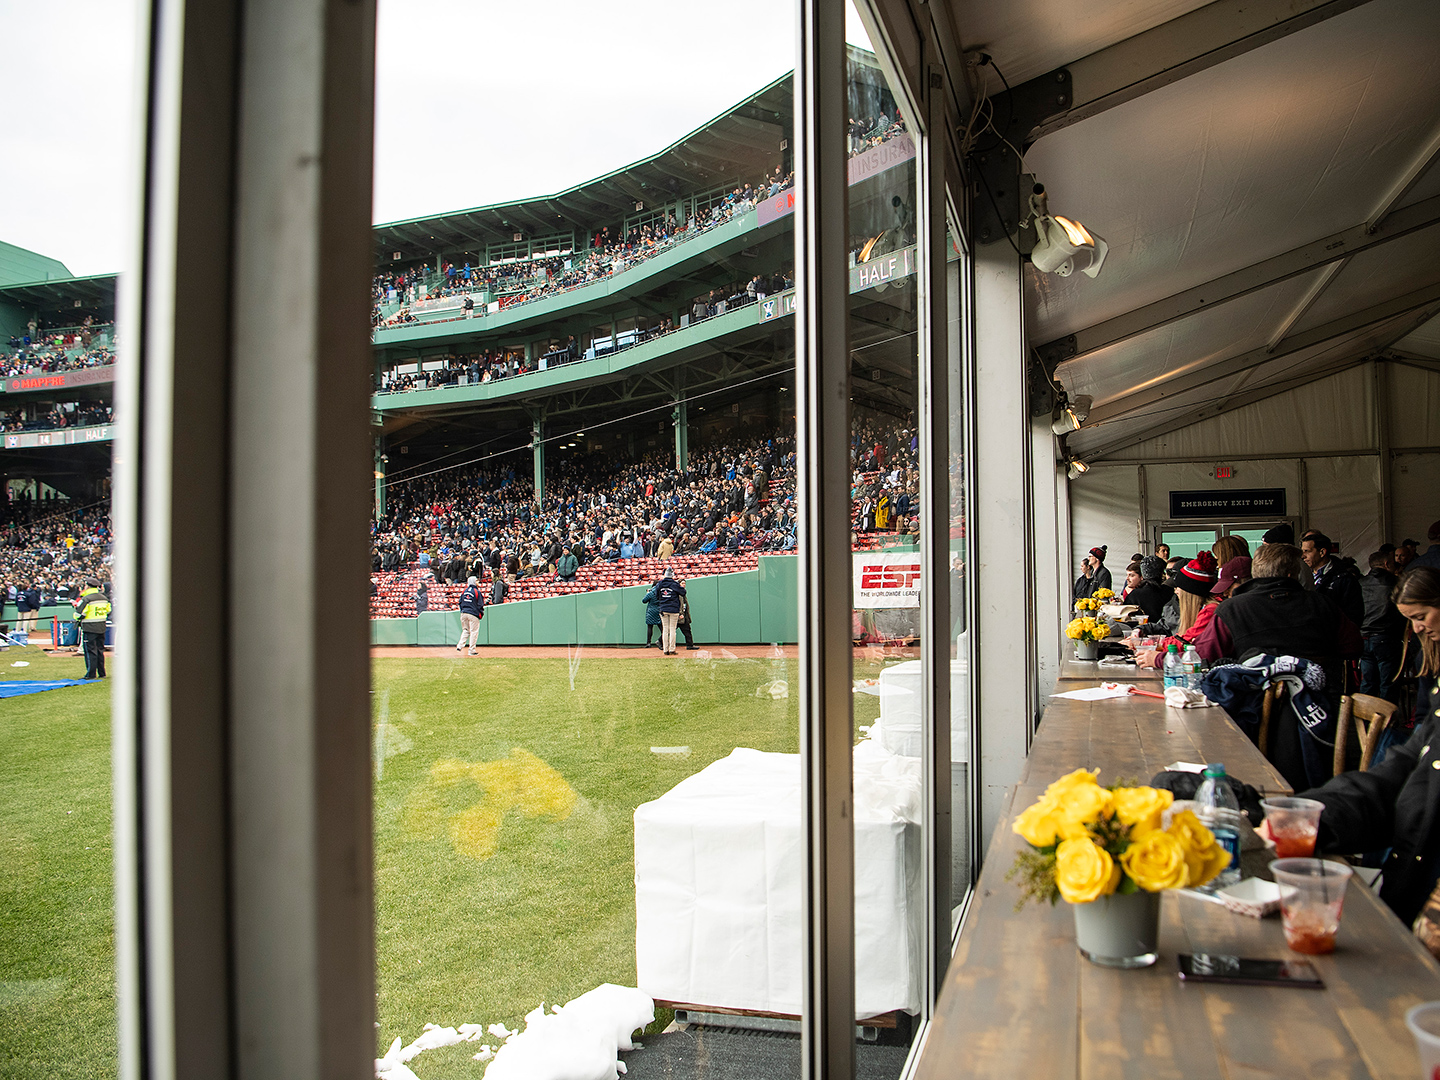 Inside of PEAK tent set up in Fenway Park outfield for Harvard-Yale football game